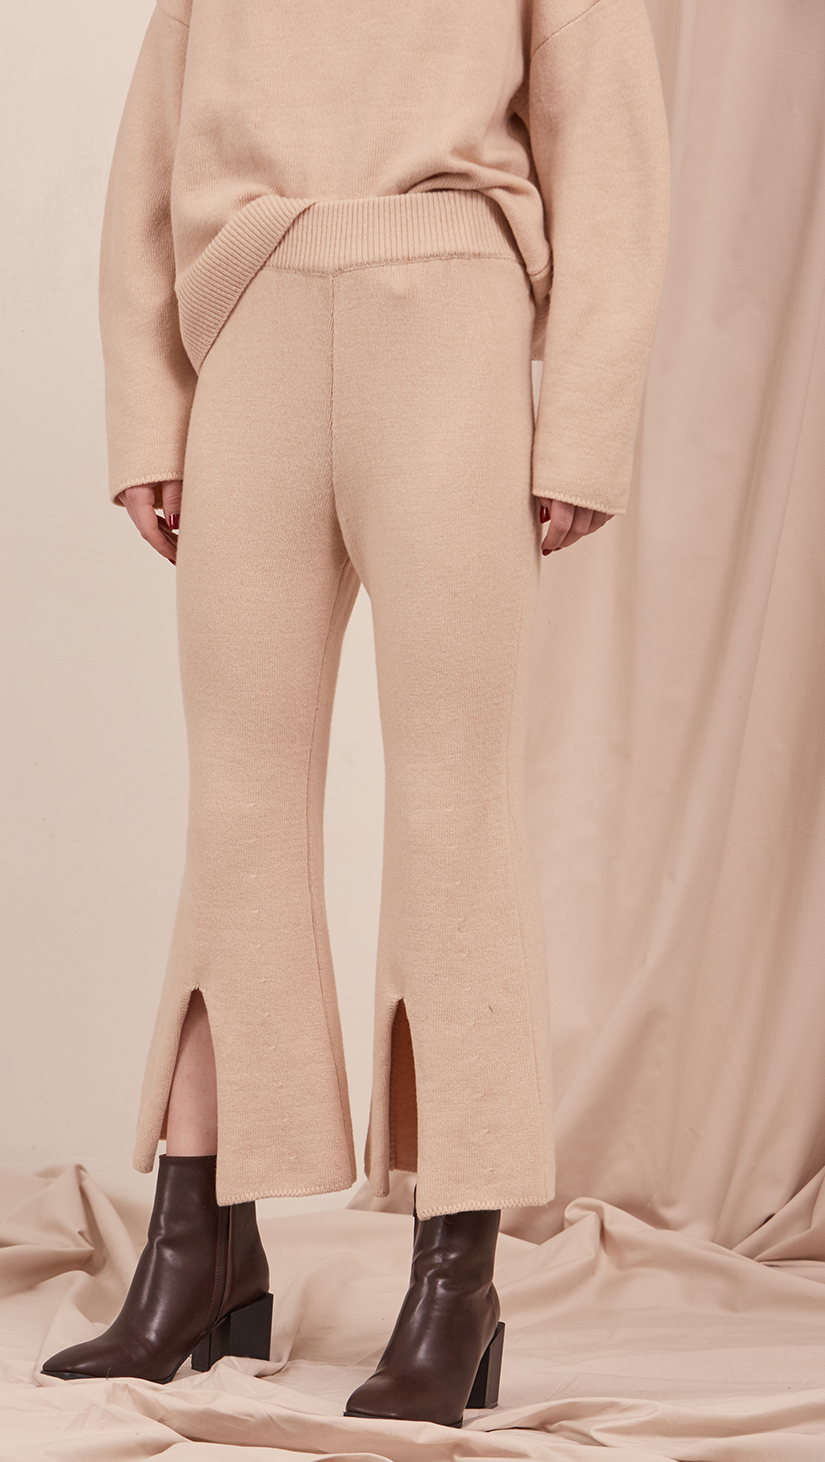 The Roscoe Pant in cream beige. Cropped length with deep V slit, gathered elastic waistband. Slightly dropped crotch. High rise.